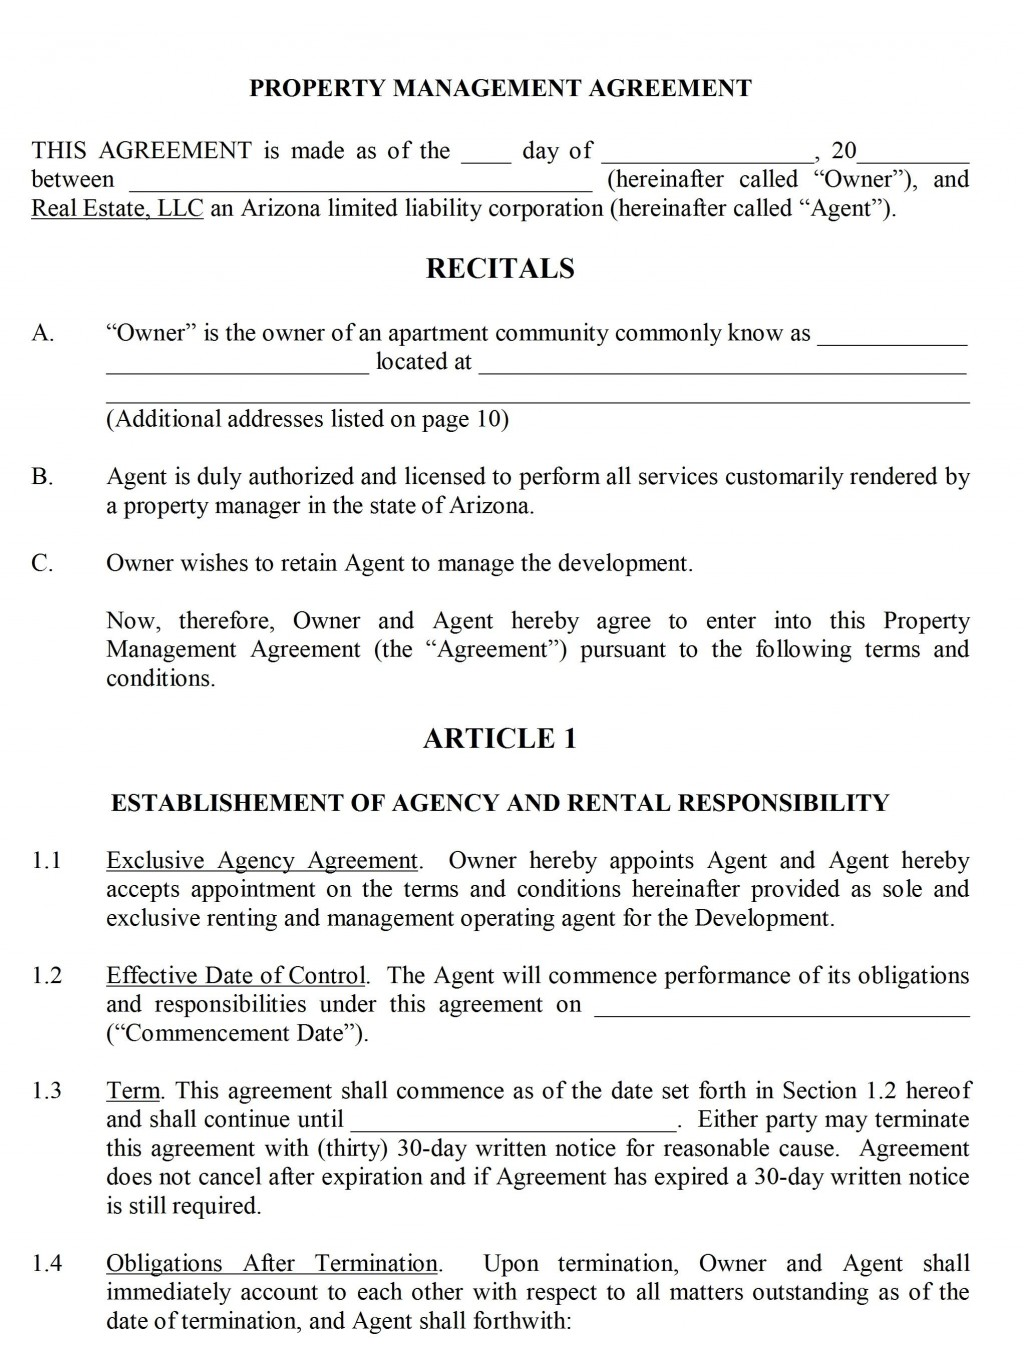 004 Shocking Property Management Contract Form Inspiration  Sample Agreement Template Free UkLarge